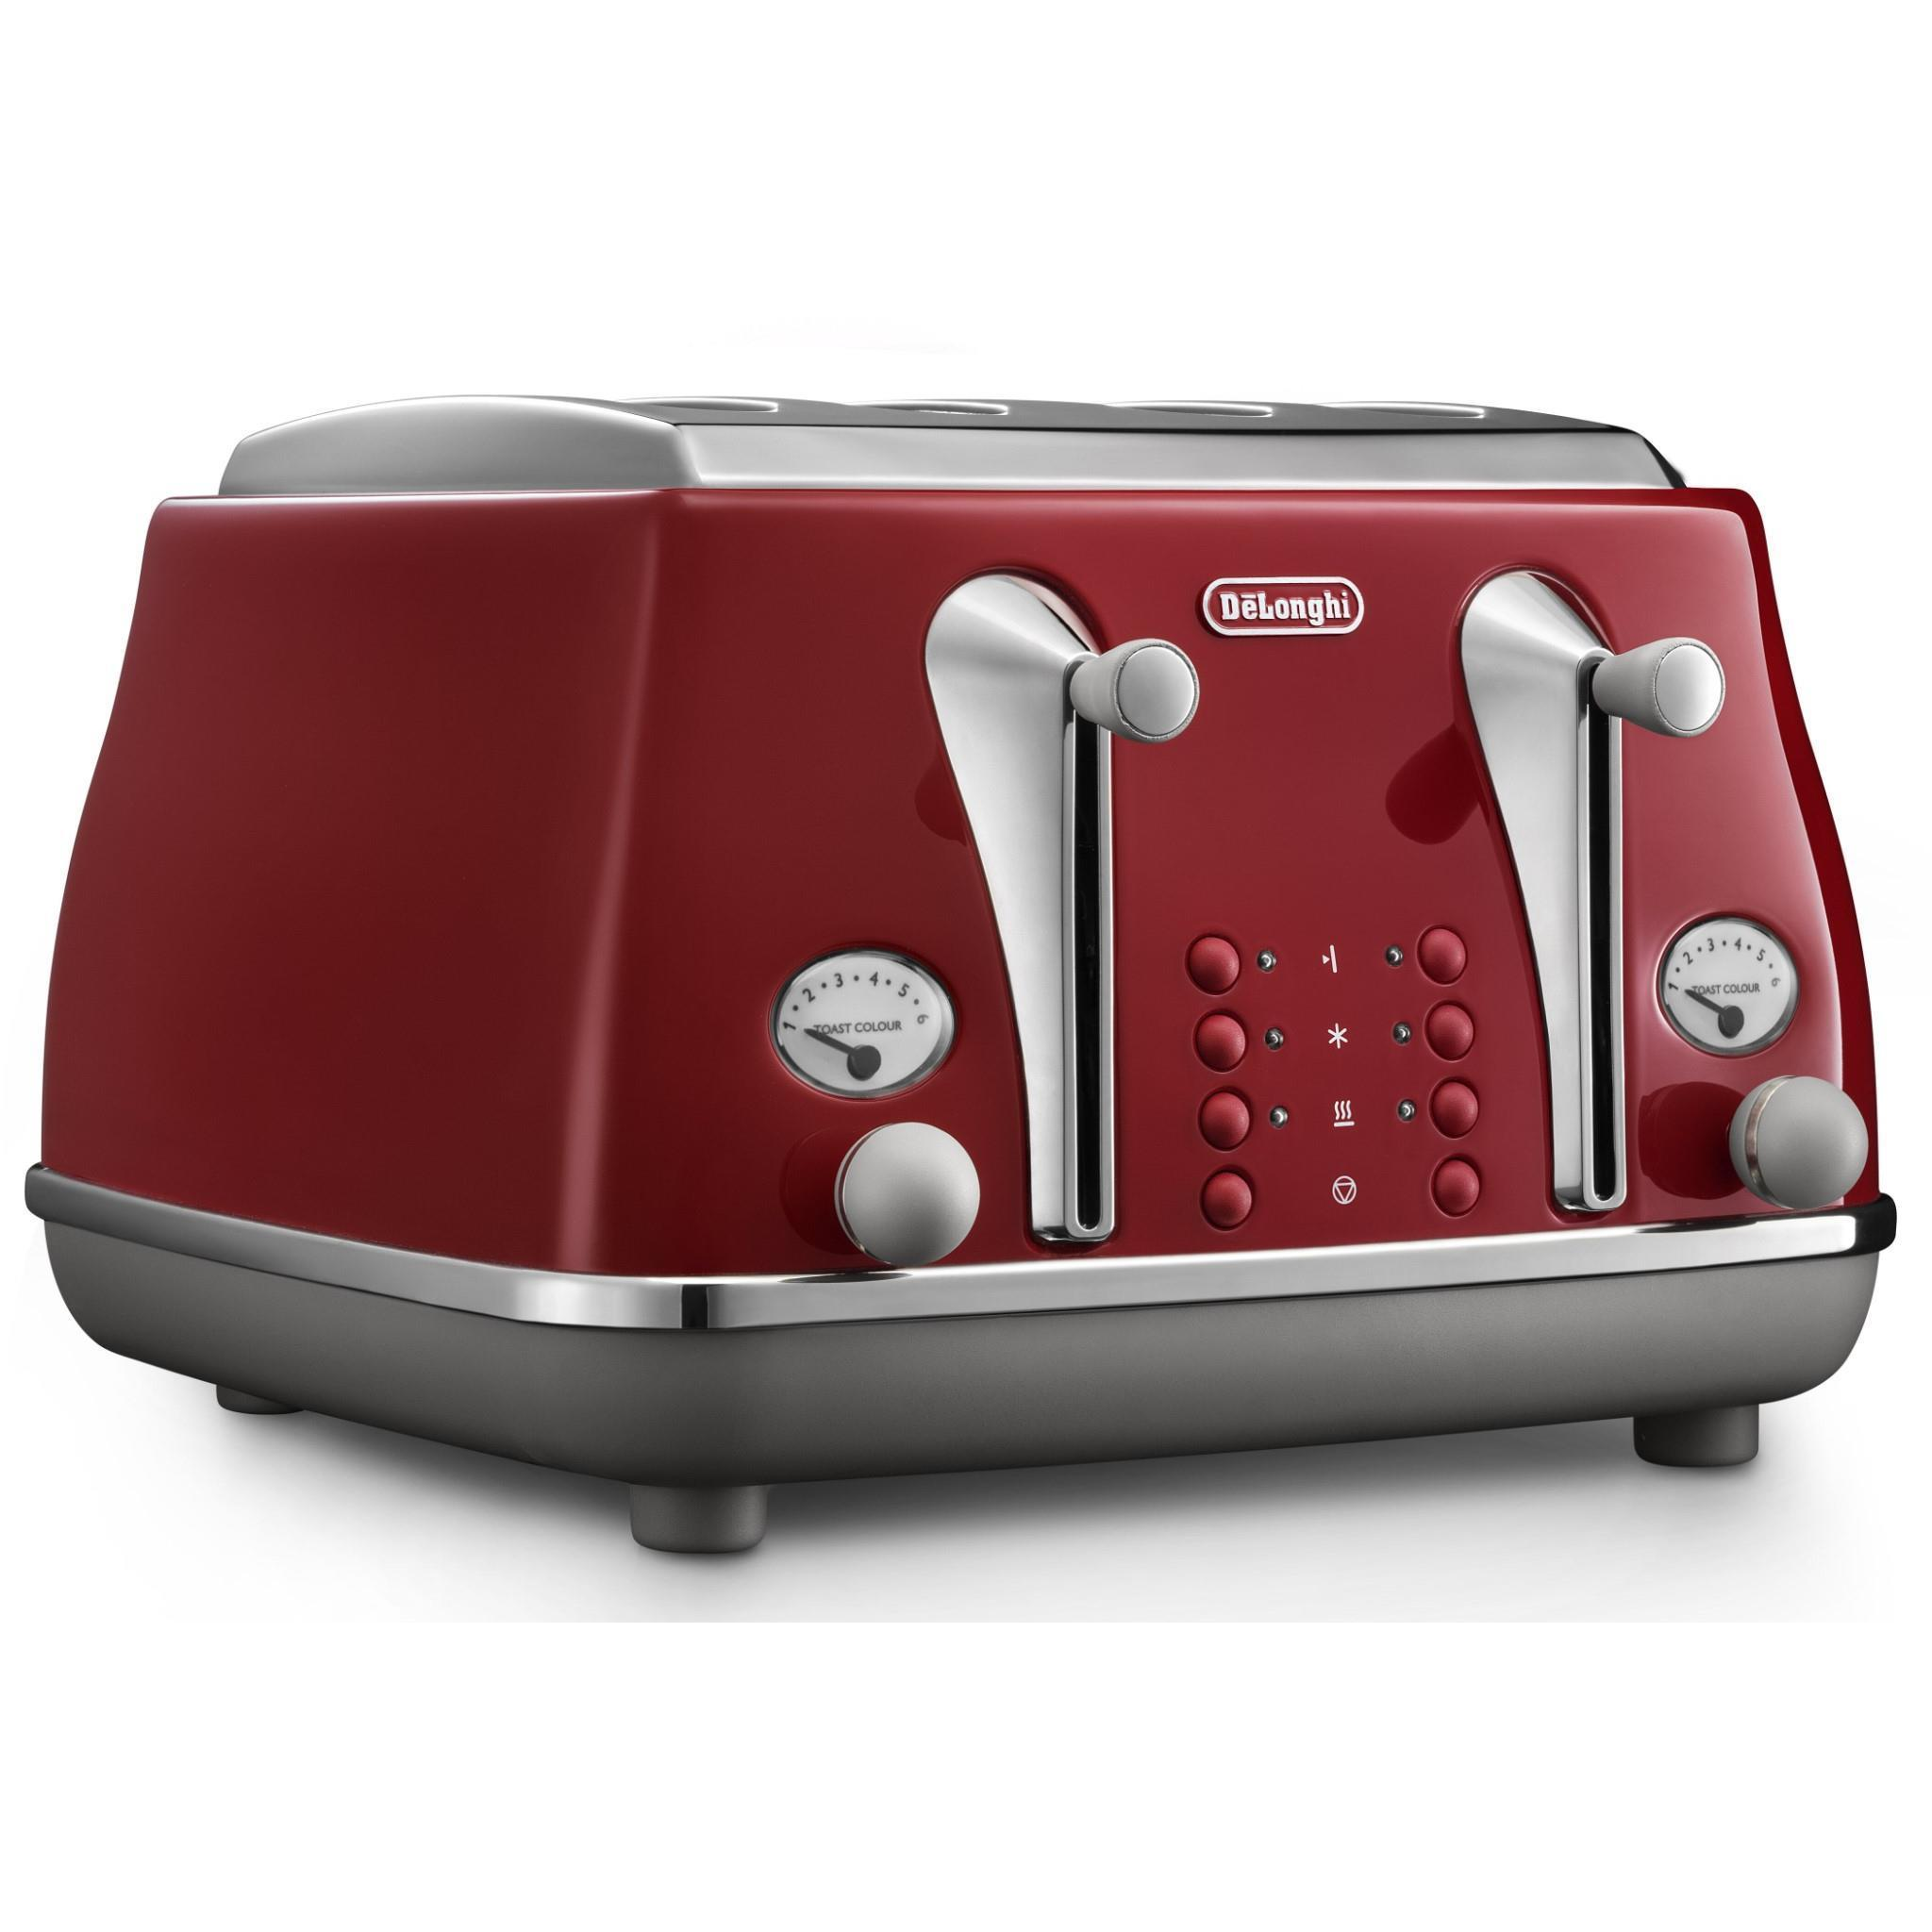 DeLonghi Icona Capitals 4 Slice Toaster (Tokyo Red)